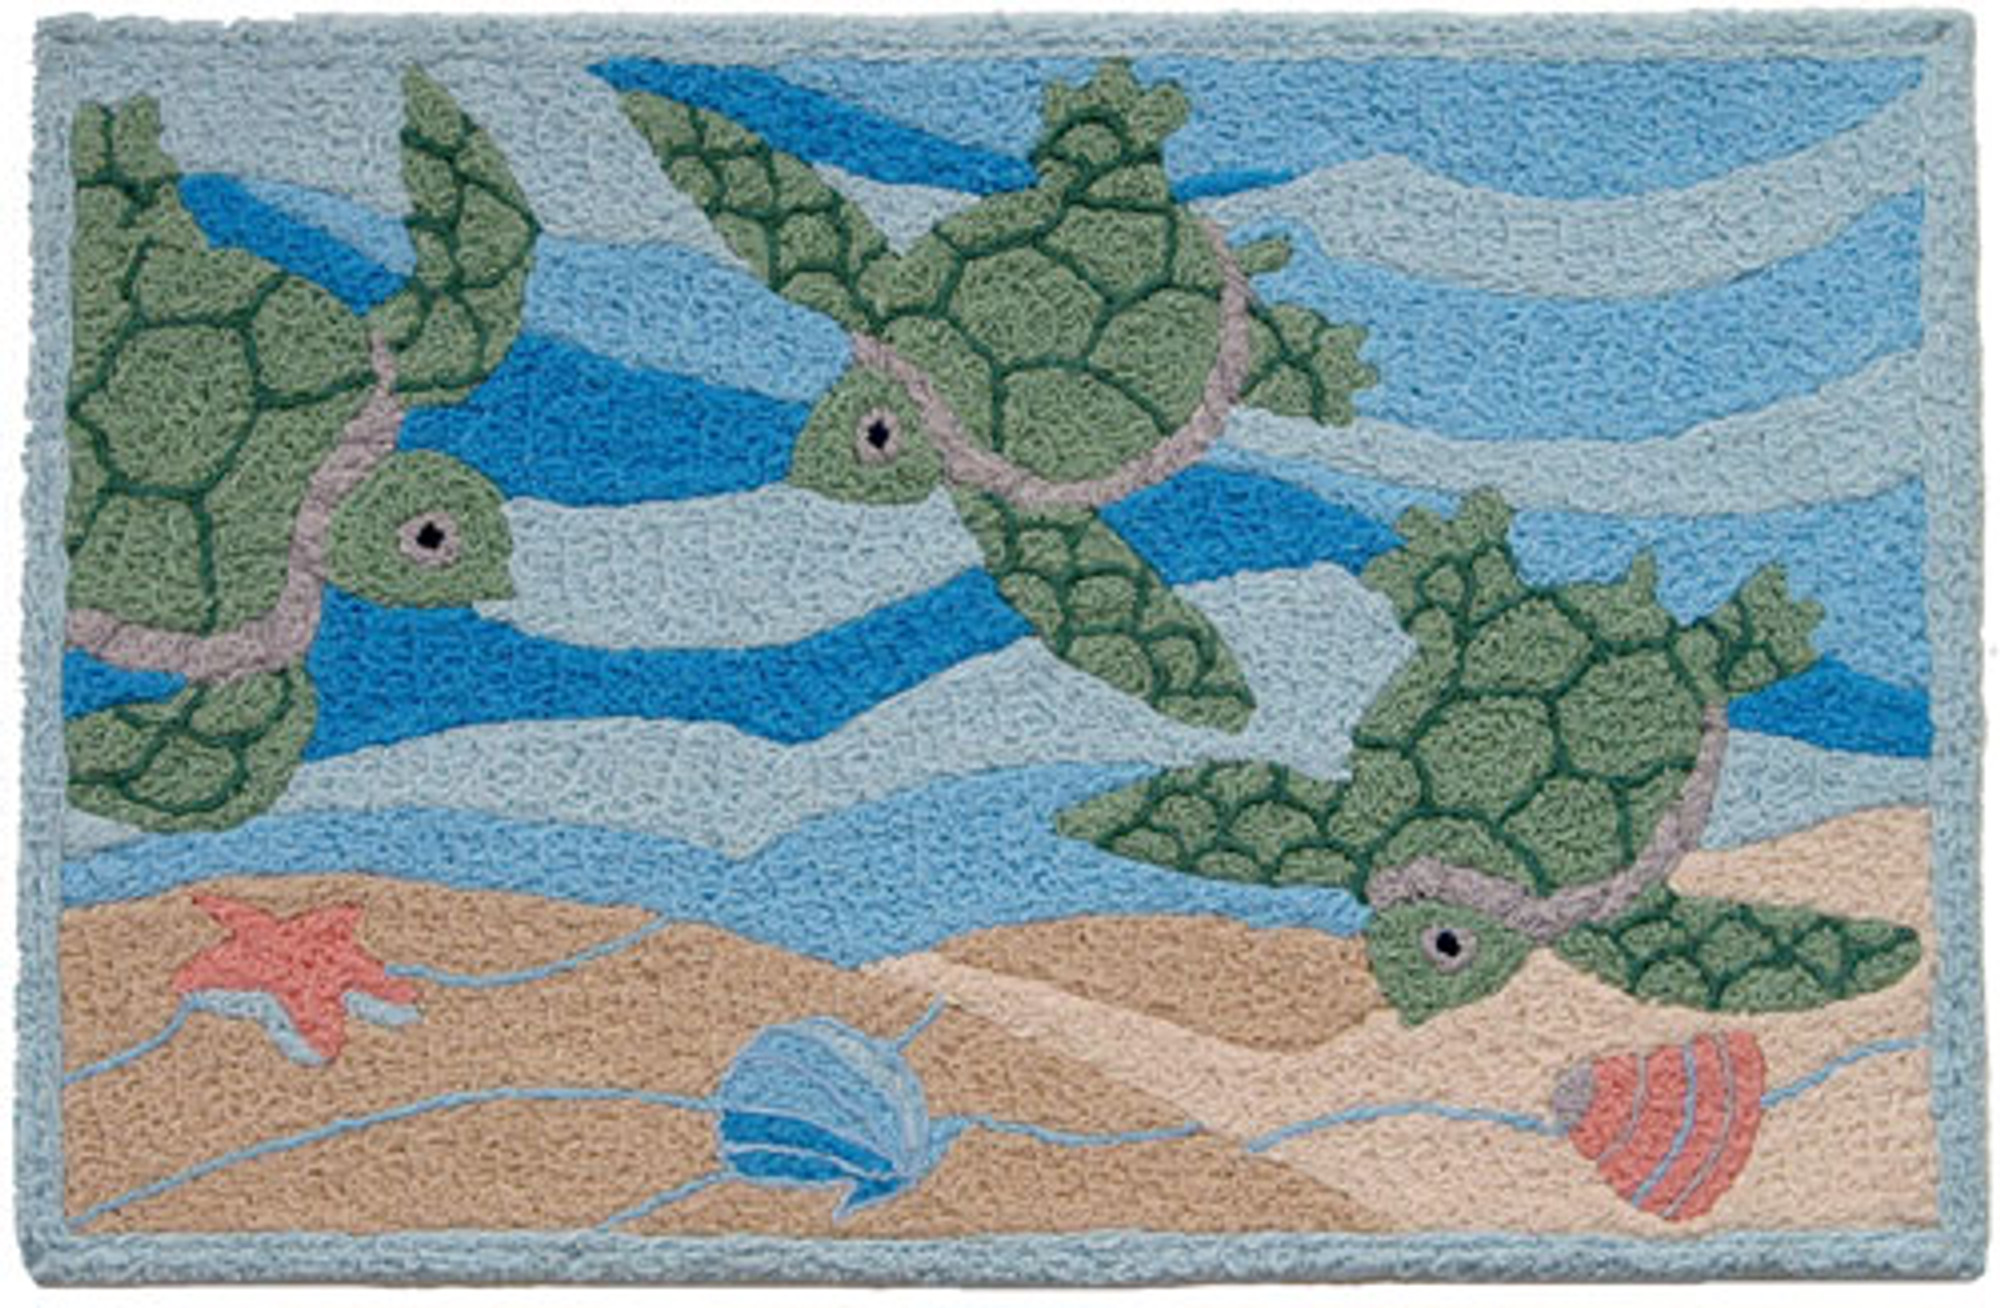 A colorful, machine washable Jellybean® rug featuring turtles swimming!